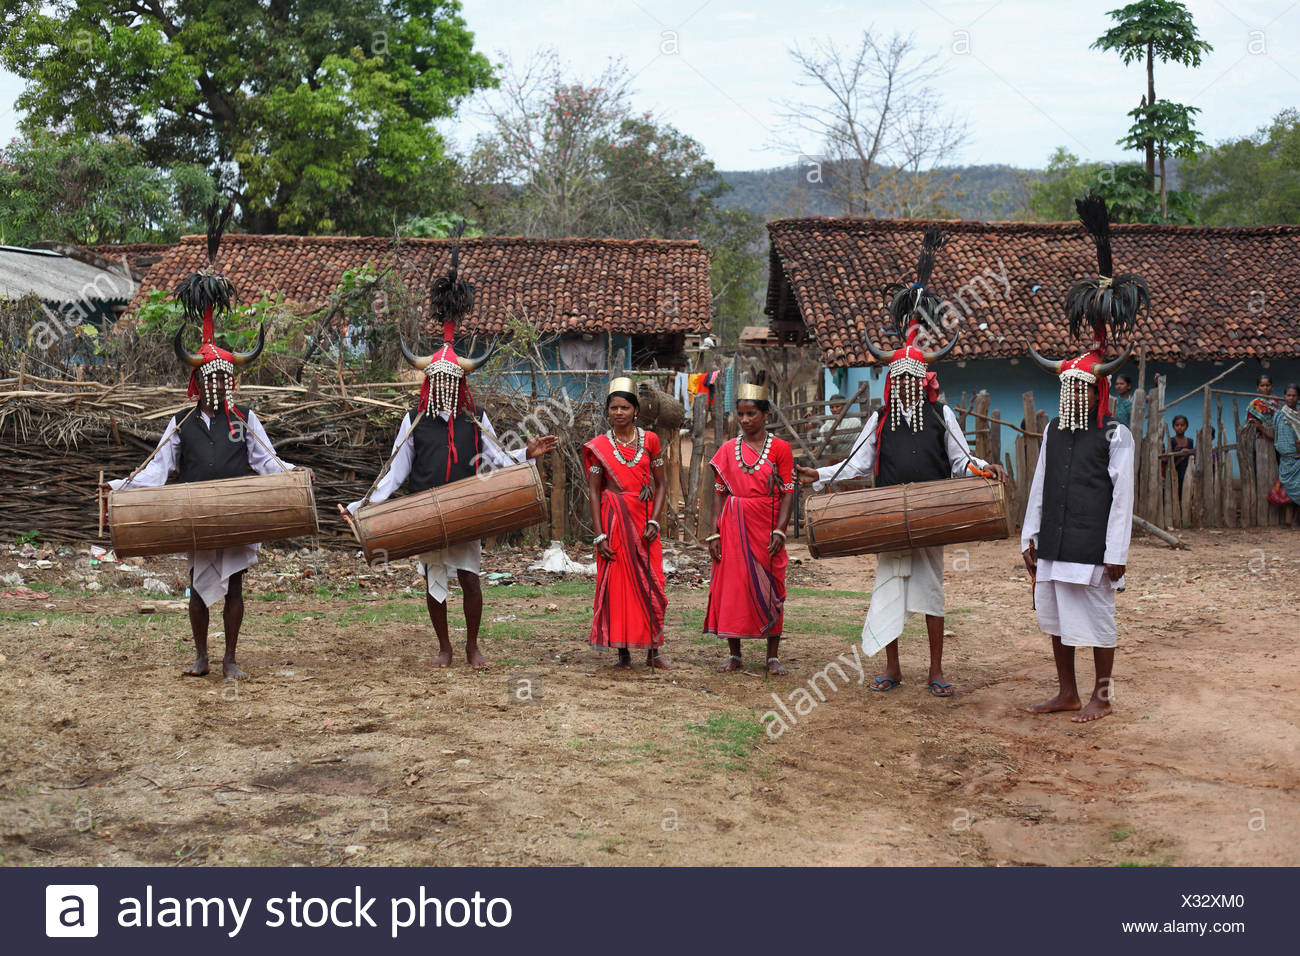 Tribal people performing a typical tribal dance in traditional outfits. Bison Horn Maria tribe, Datalpara, Gamawada, Chattisgadh - Stock Image